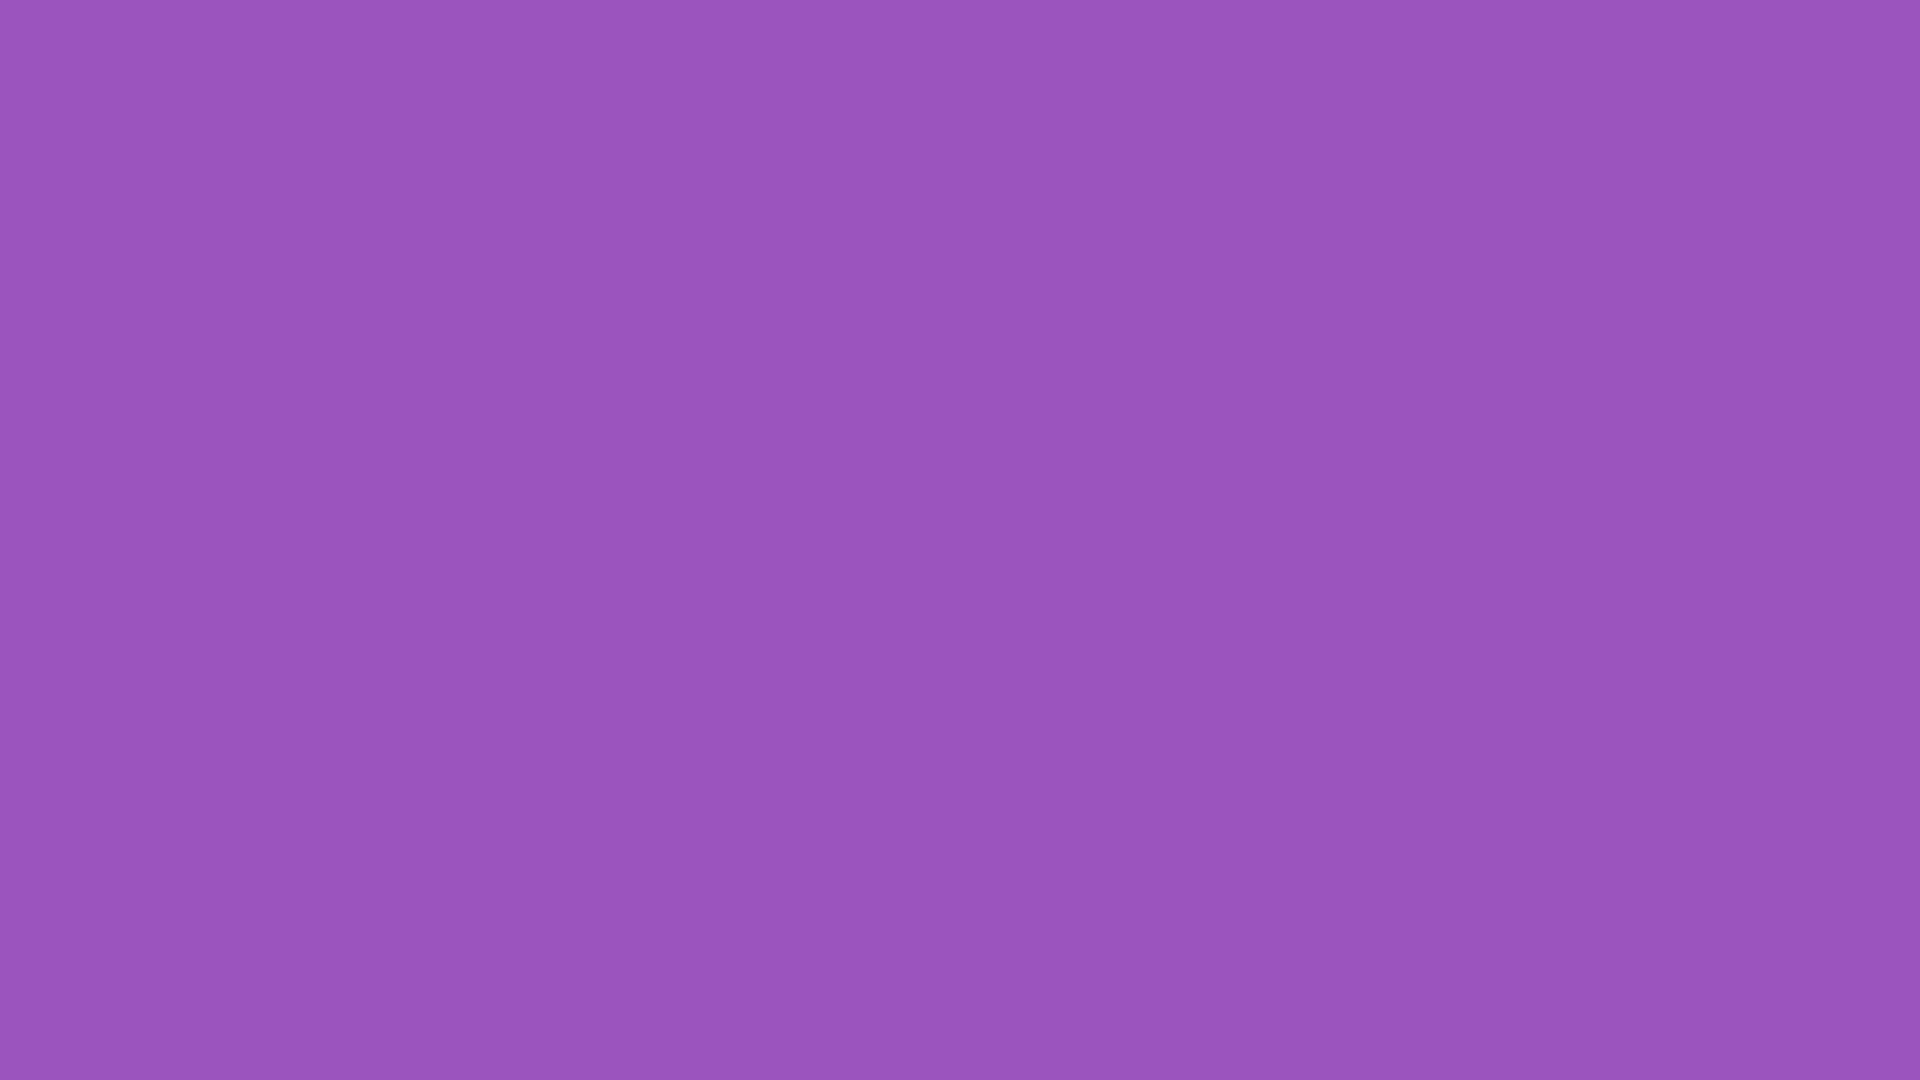 1920x1080 Deep Lilac Solid Color Background